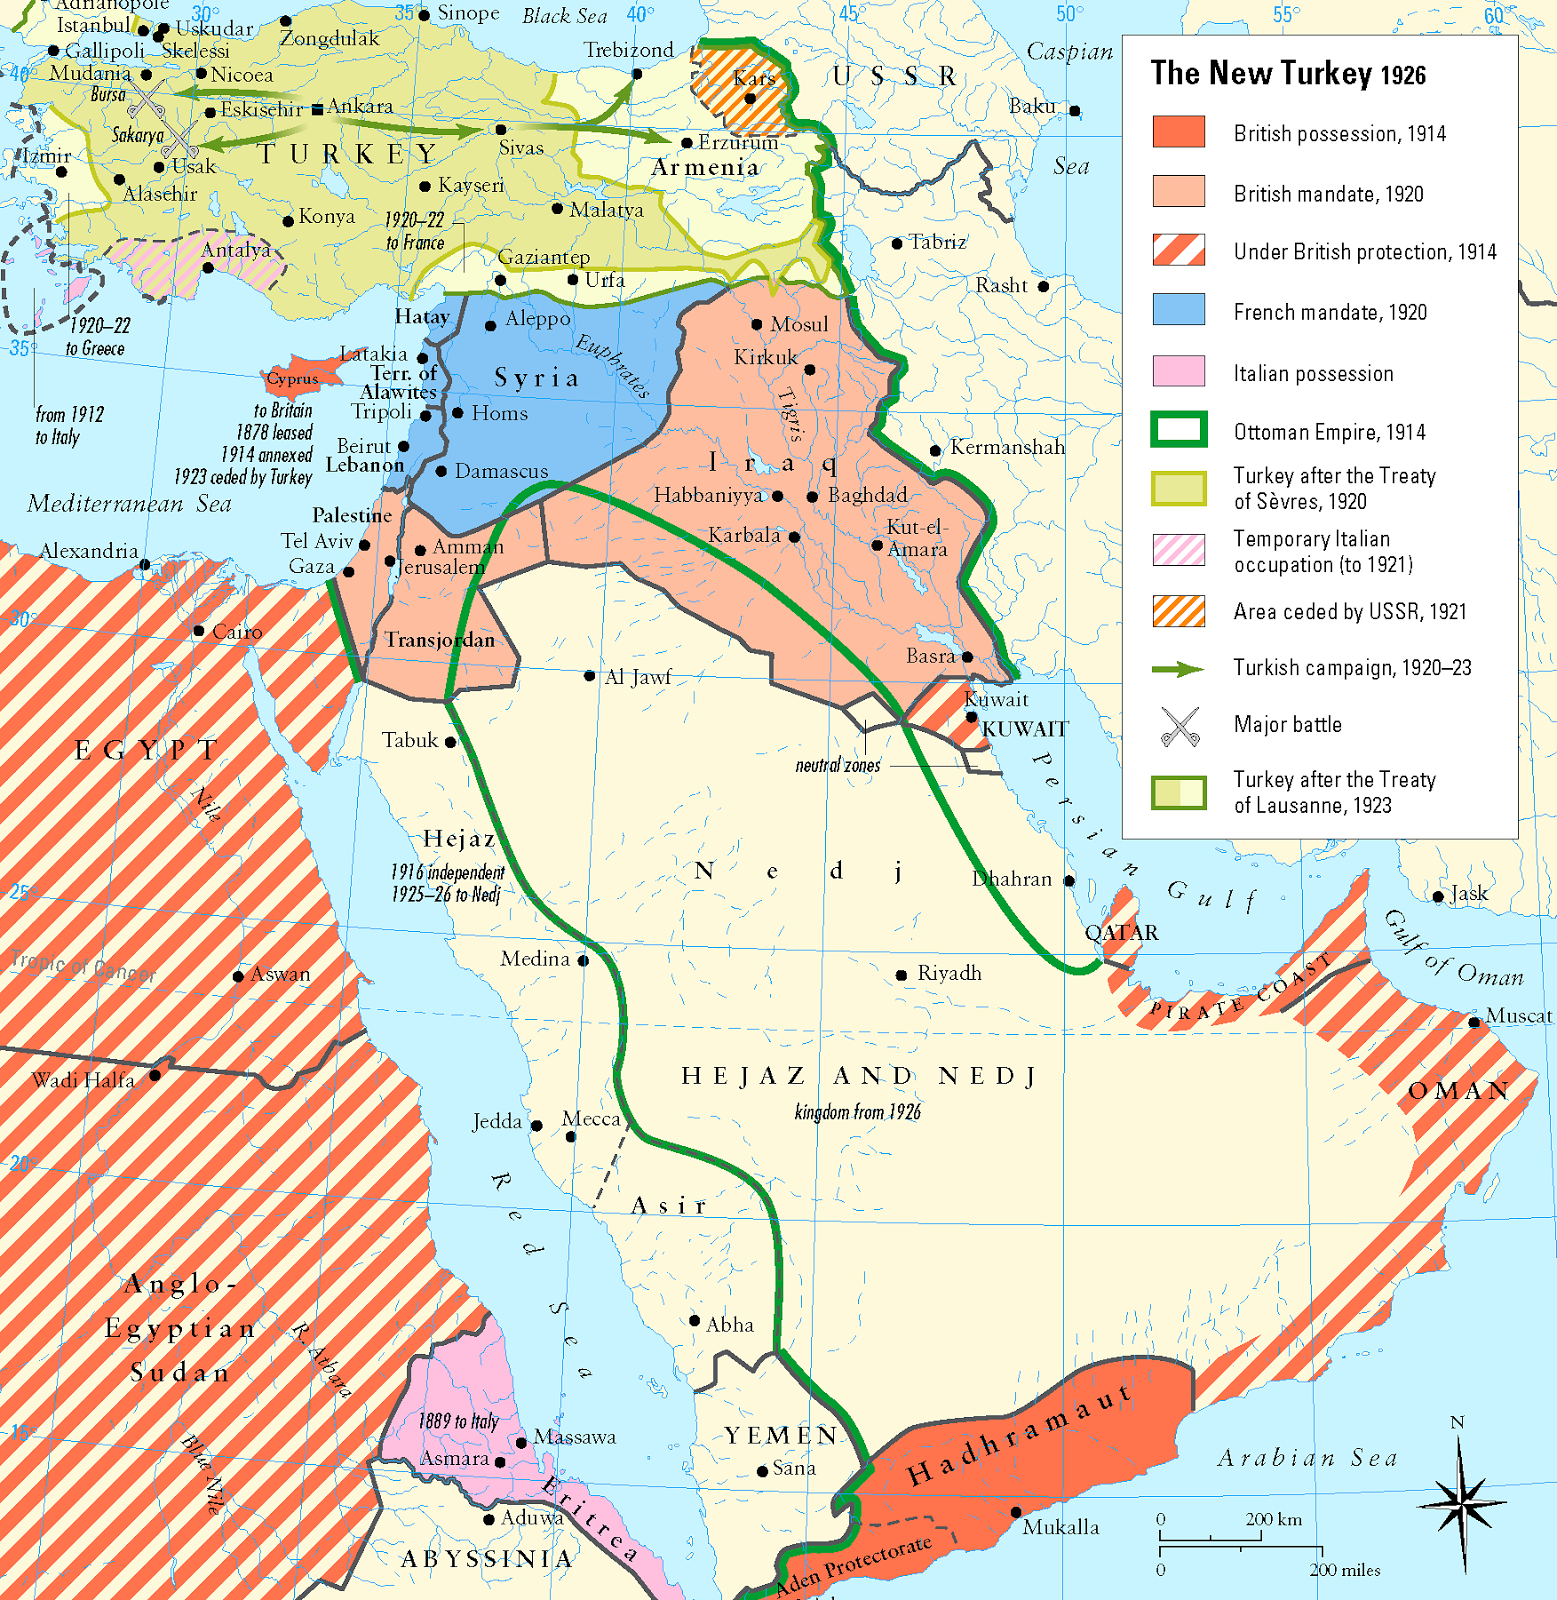 the_new_turkey_1926_ottoman_empire_middle_east_madness-_through_my_eyes_blogspot.png